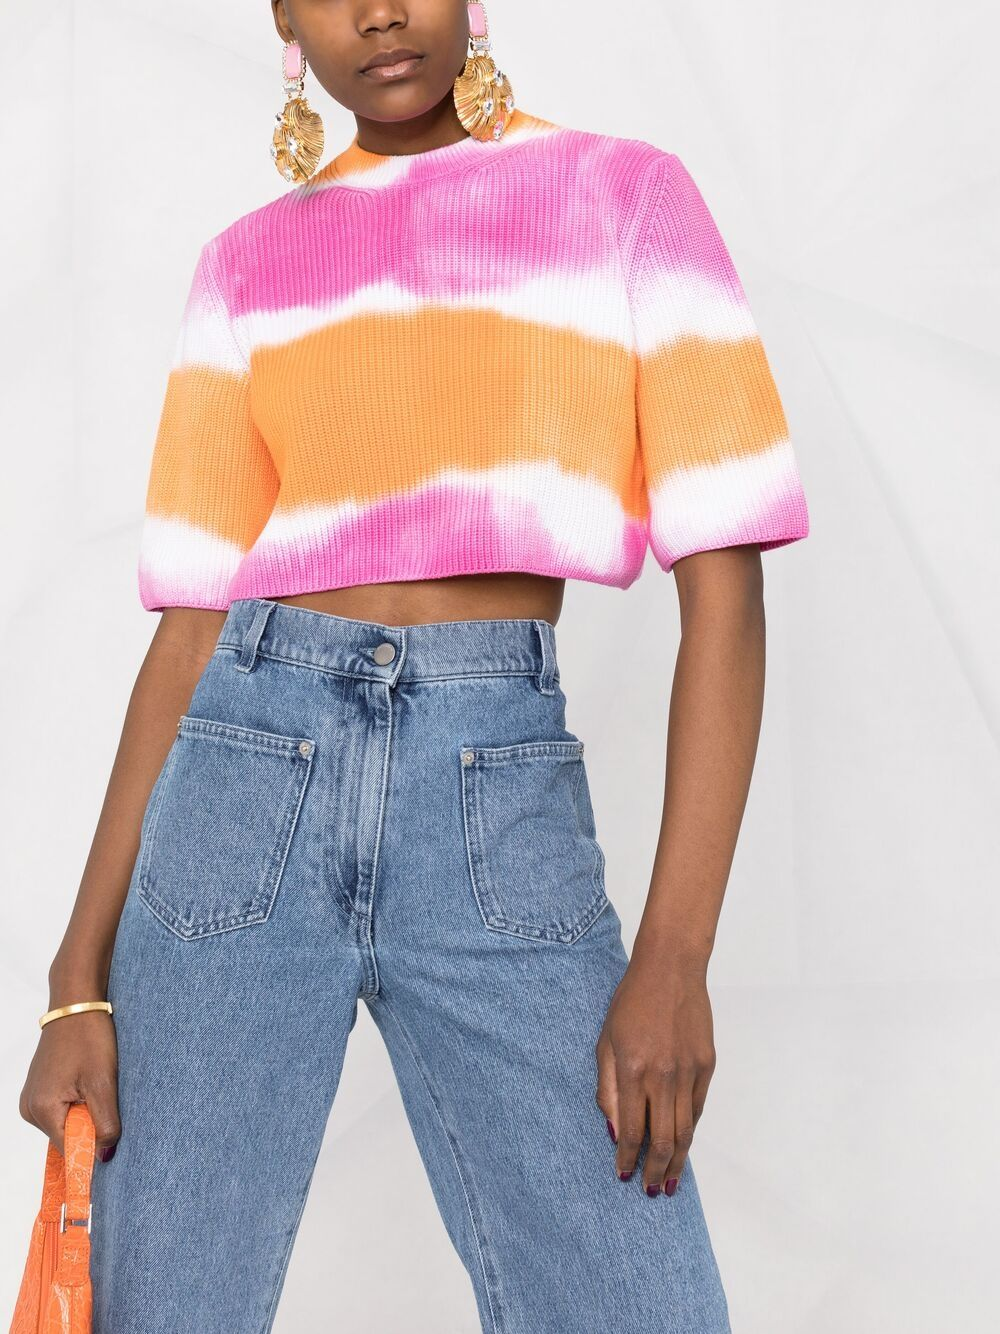 MSGM Tie-Dye Knitted Cropped Top 413лв